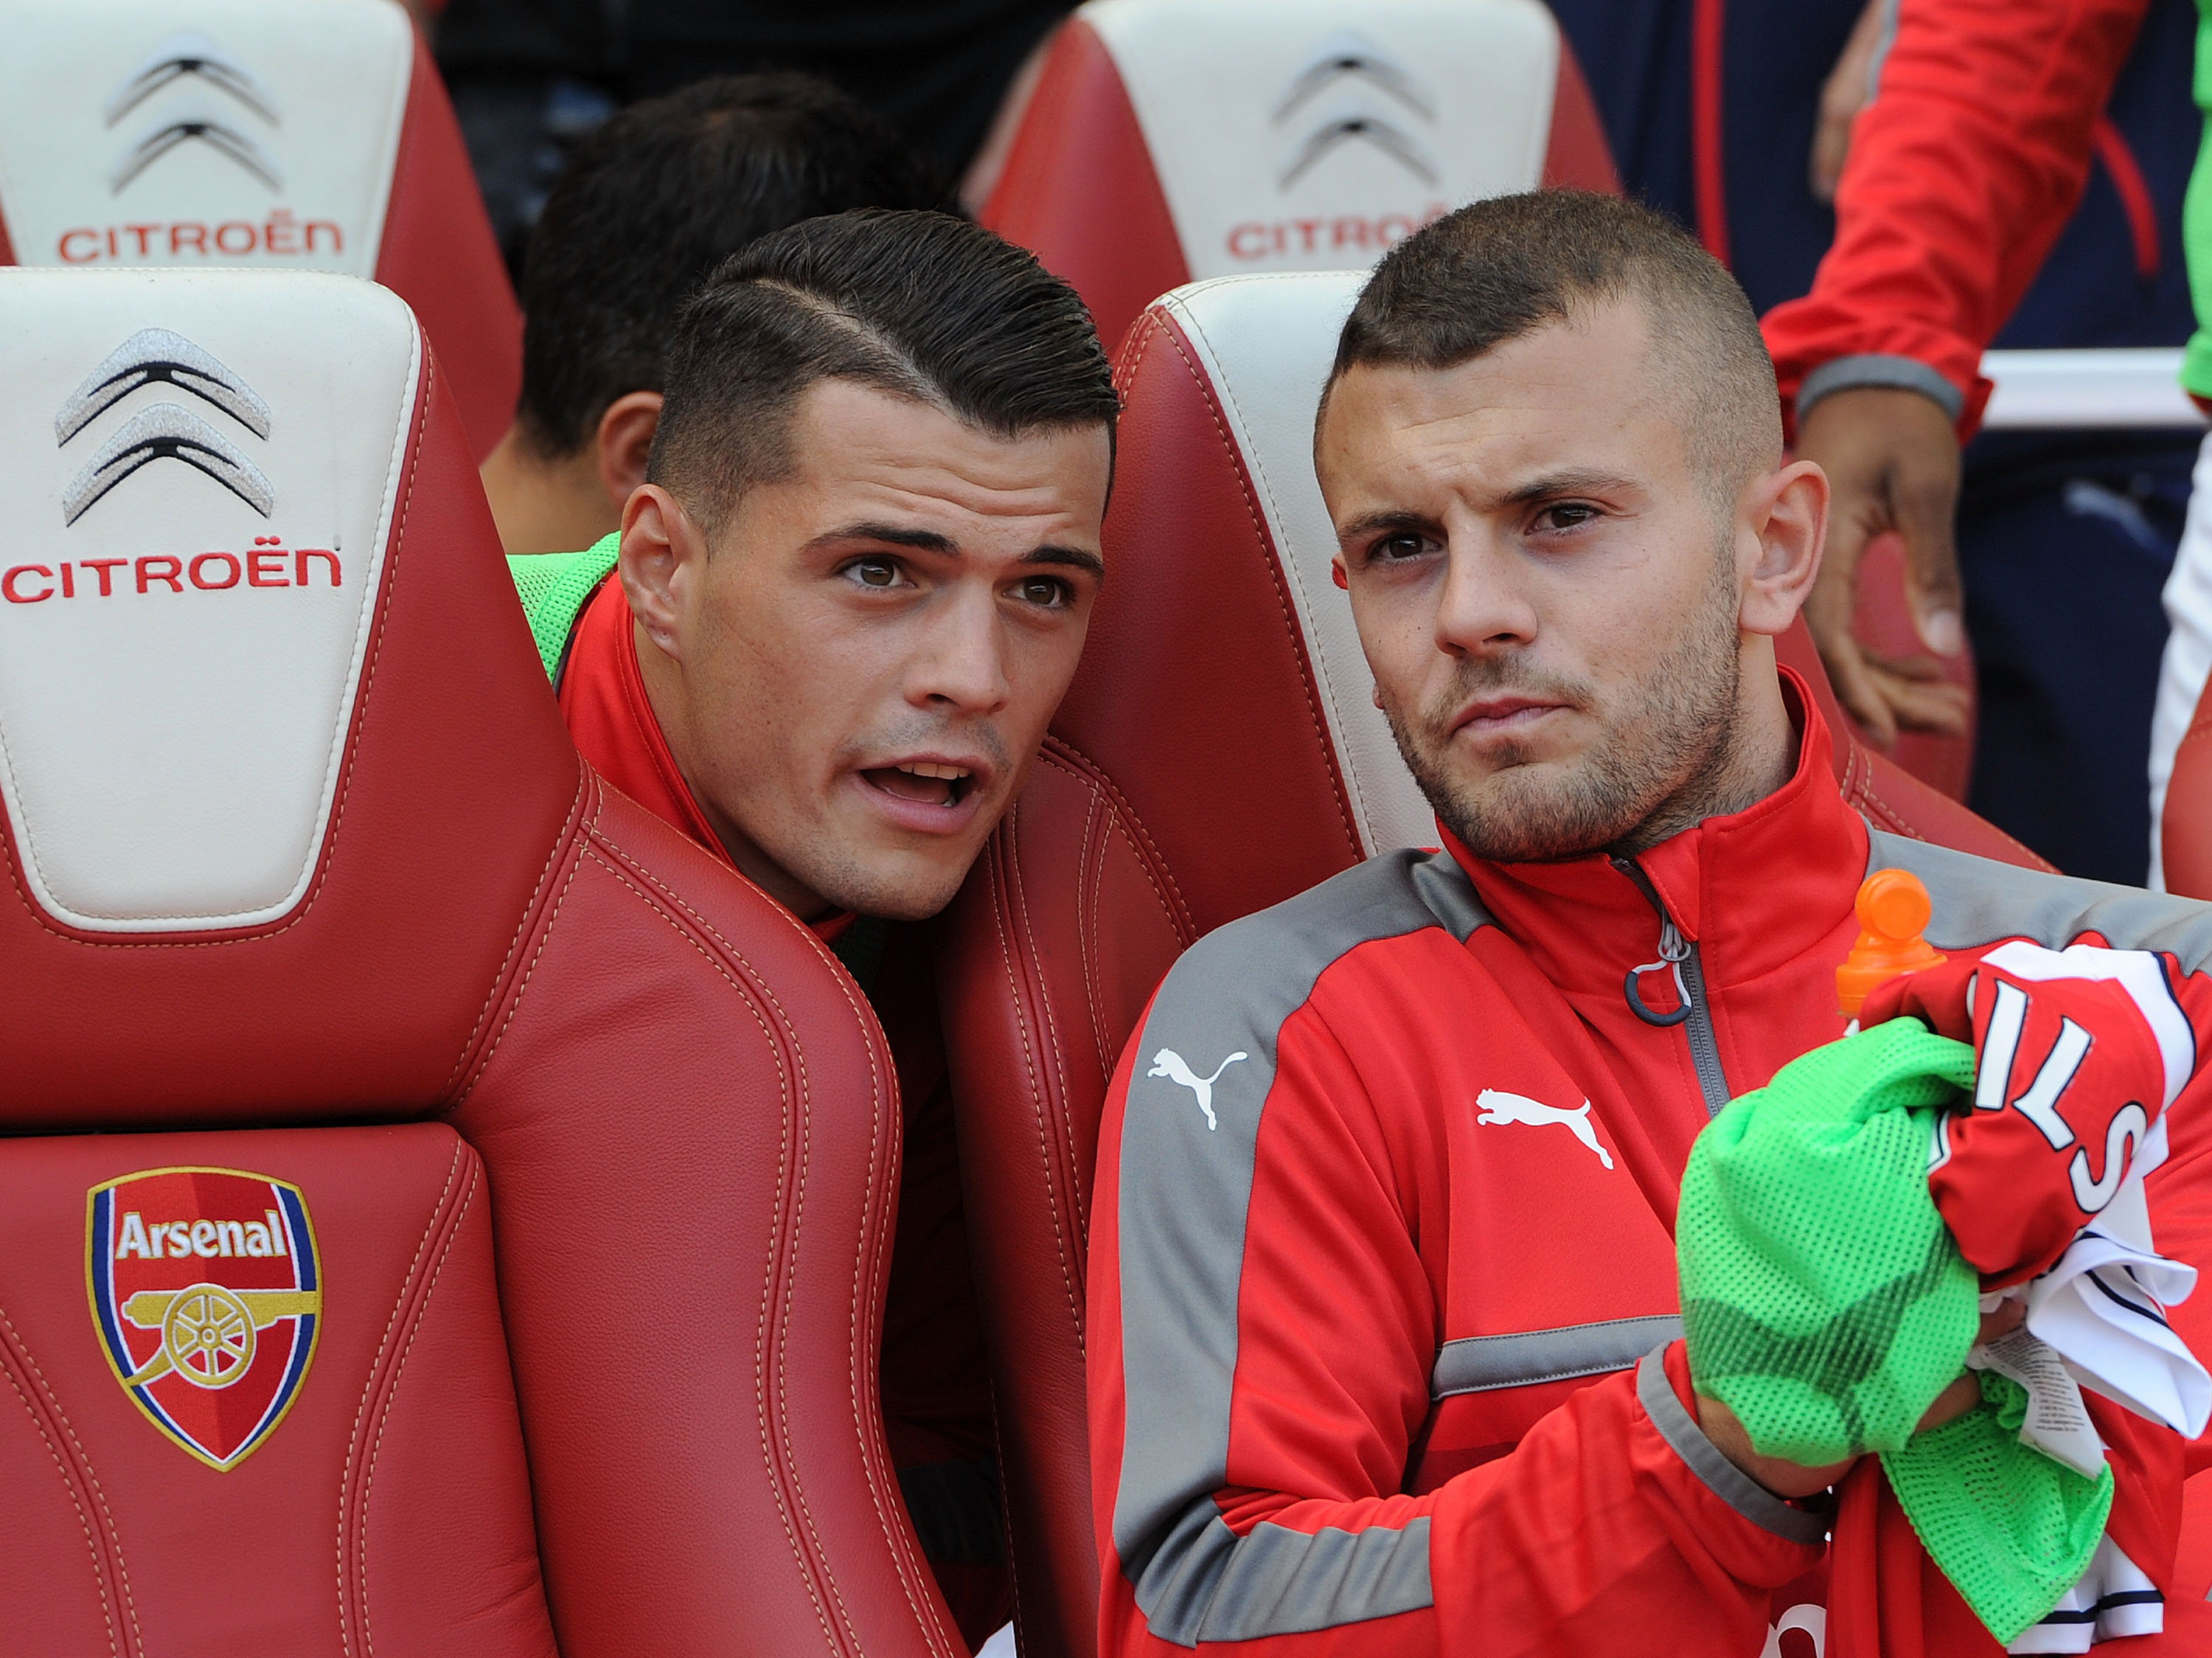 Jack Wilshere's Arsenal midfield partnership with Granit Xhaka is flawed, says Emmanuel Petit